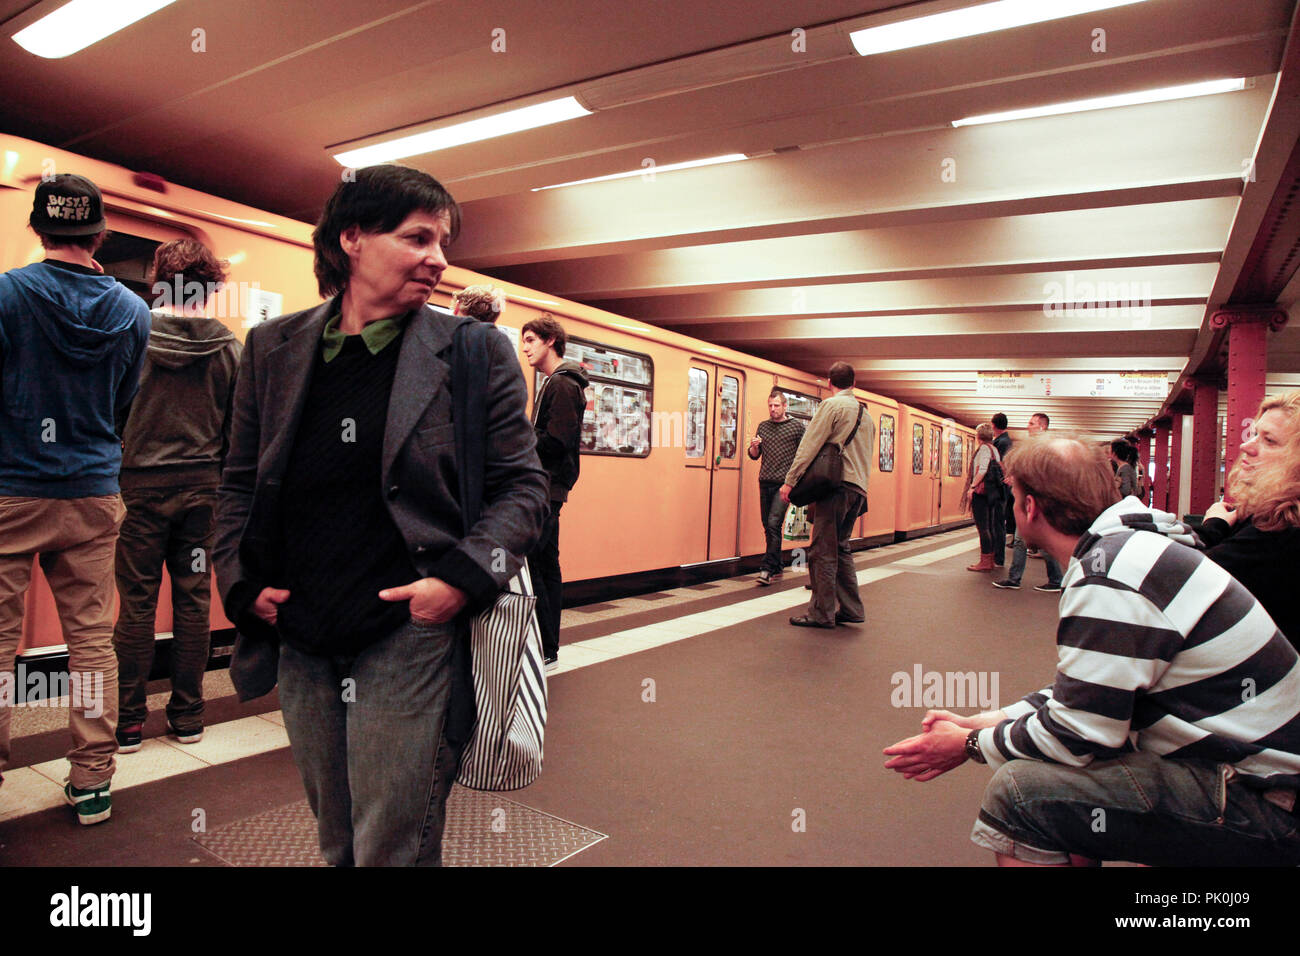 People at the underground Alexanderplatz metro station in Berlin, Germany load and unload passengers - Stock Image